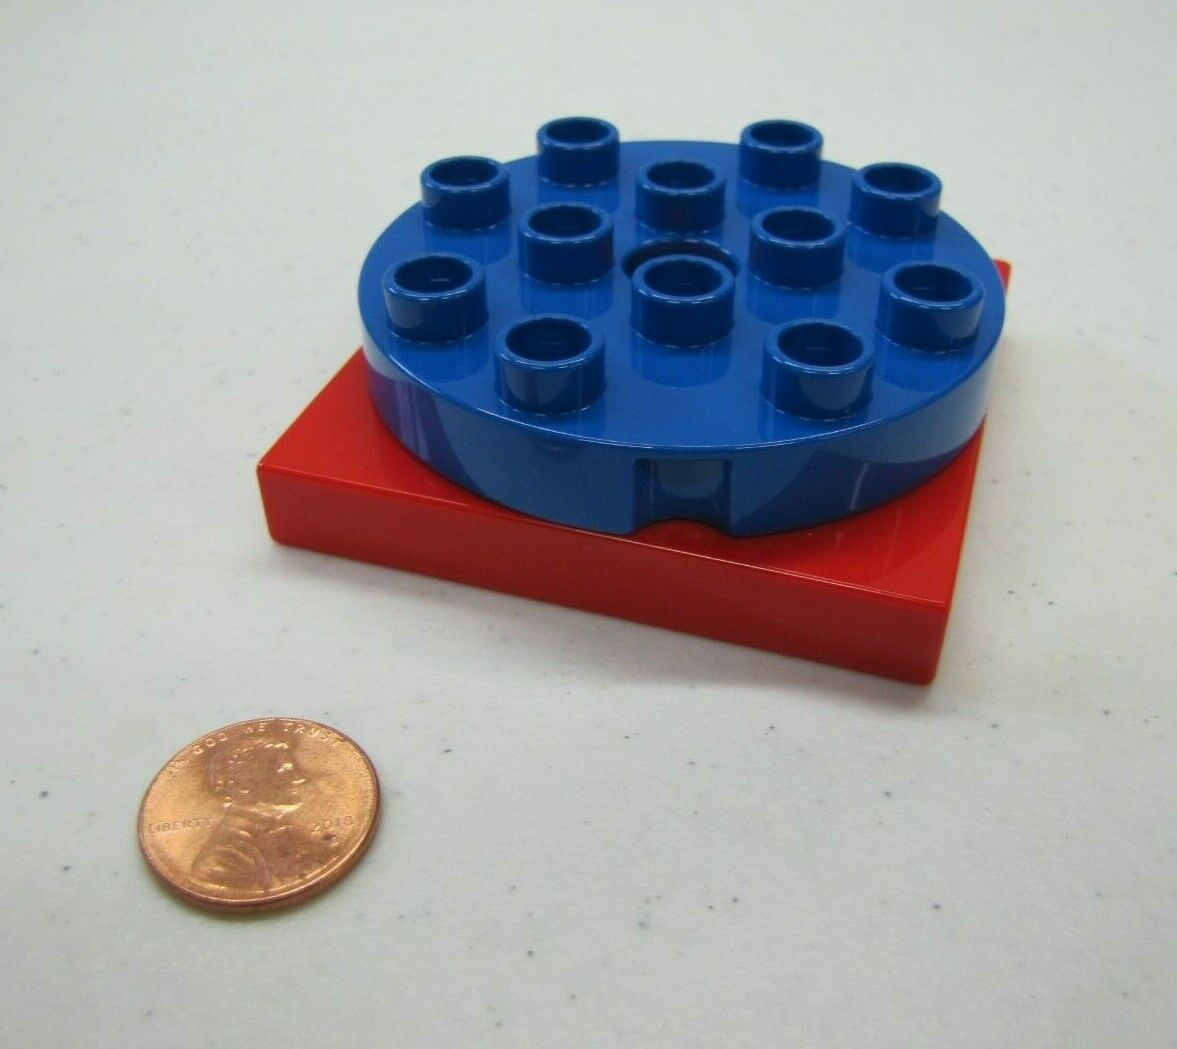 Rare Lego Duplo PINK /& BLUE TURNTABLE SWIVEL Turn Table BLOCK Specialty Part